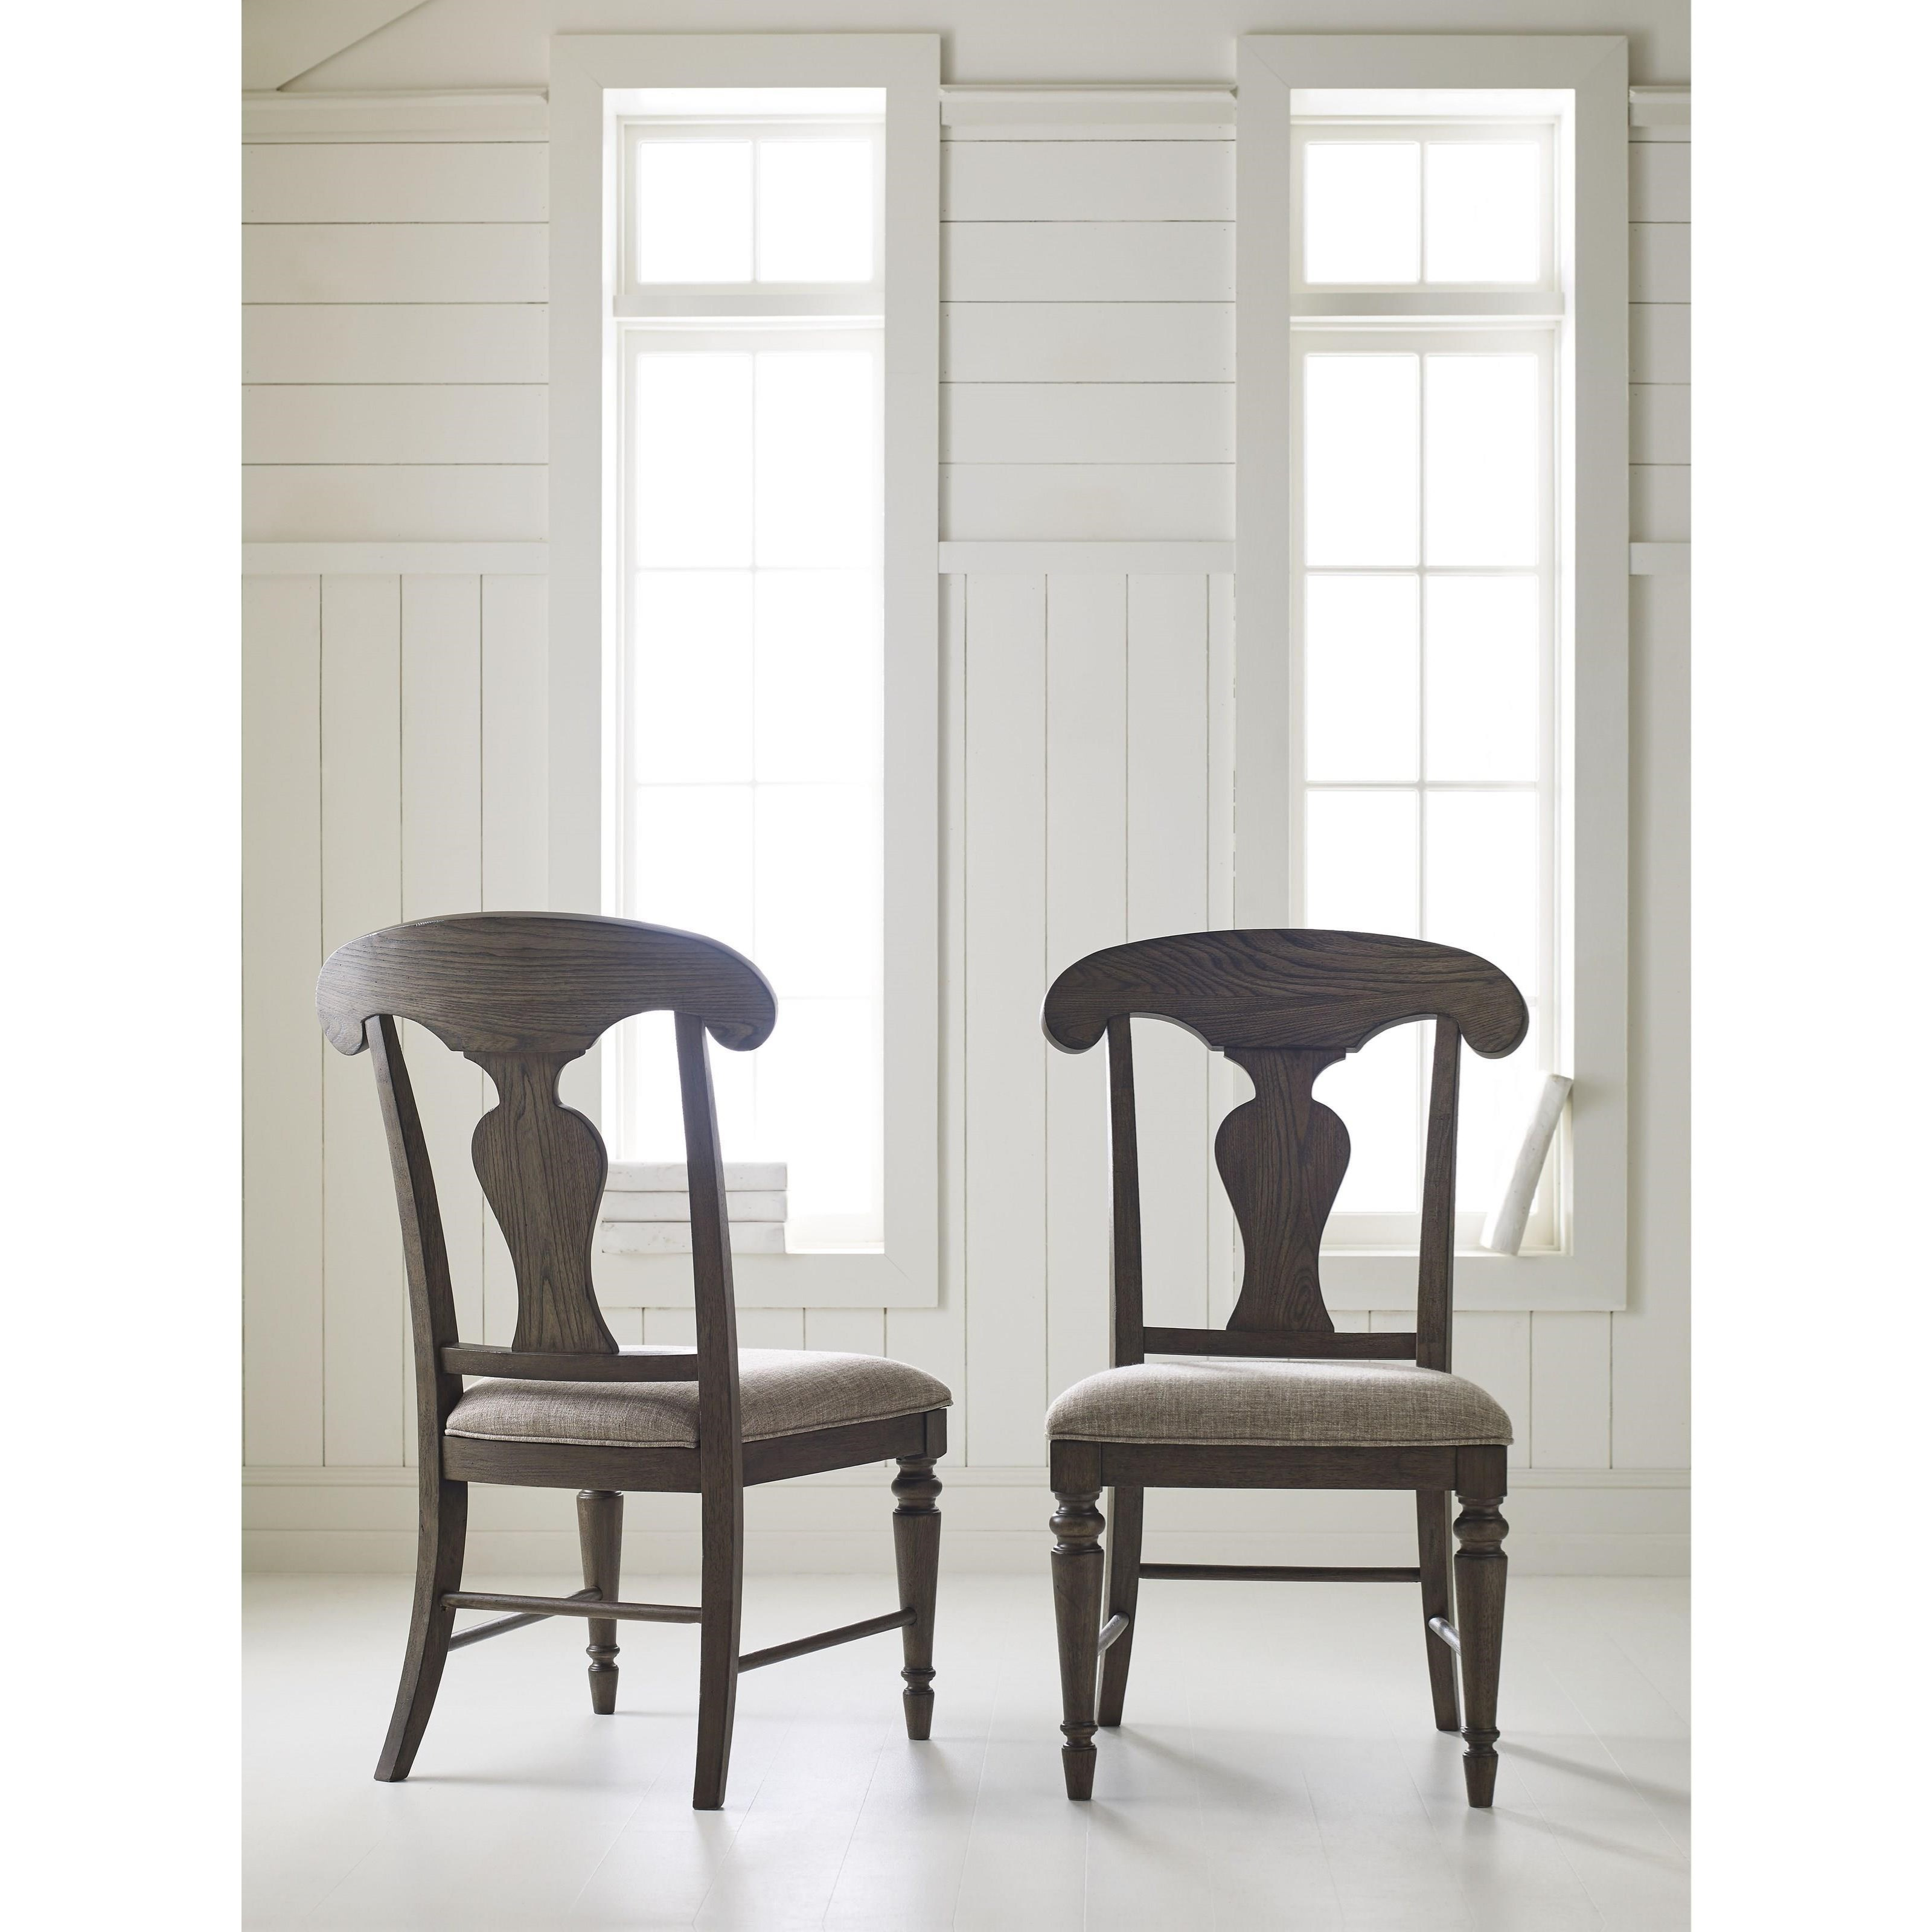 Legacy classic brookhaven 6400 240 kd splat back side for Legacy classic dining room furniture